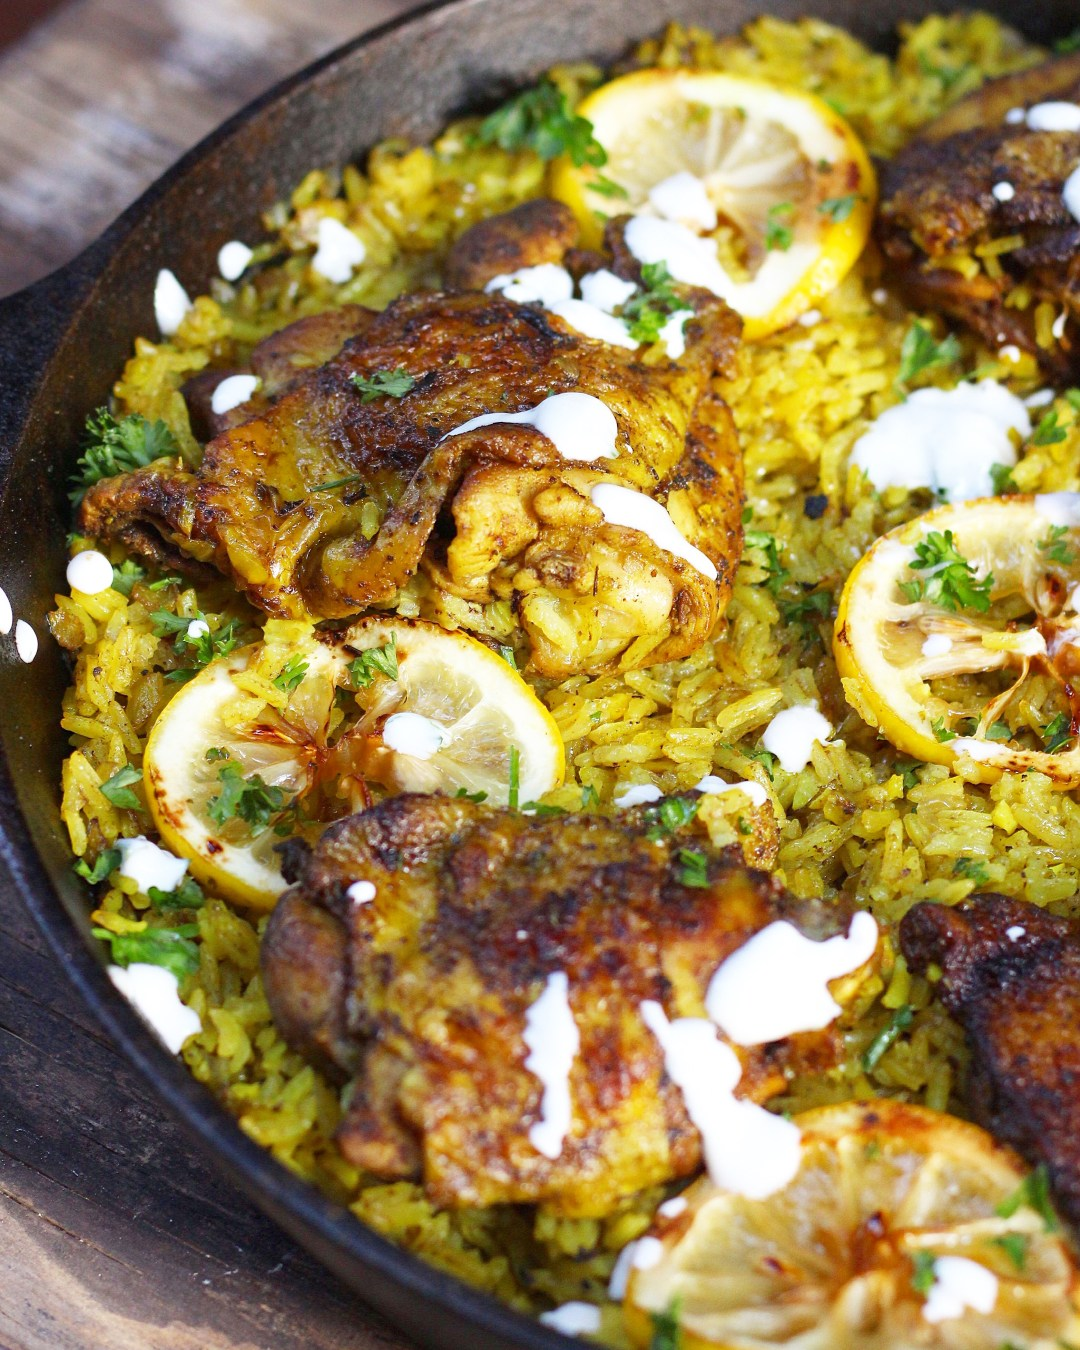 One pot middle eastern chicken and rice evs eats a flavorful middle eastern chicken made with seasoned turmeric rice all in one pot fuss forumfinder Images